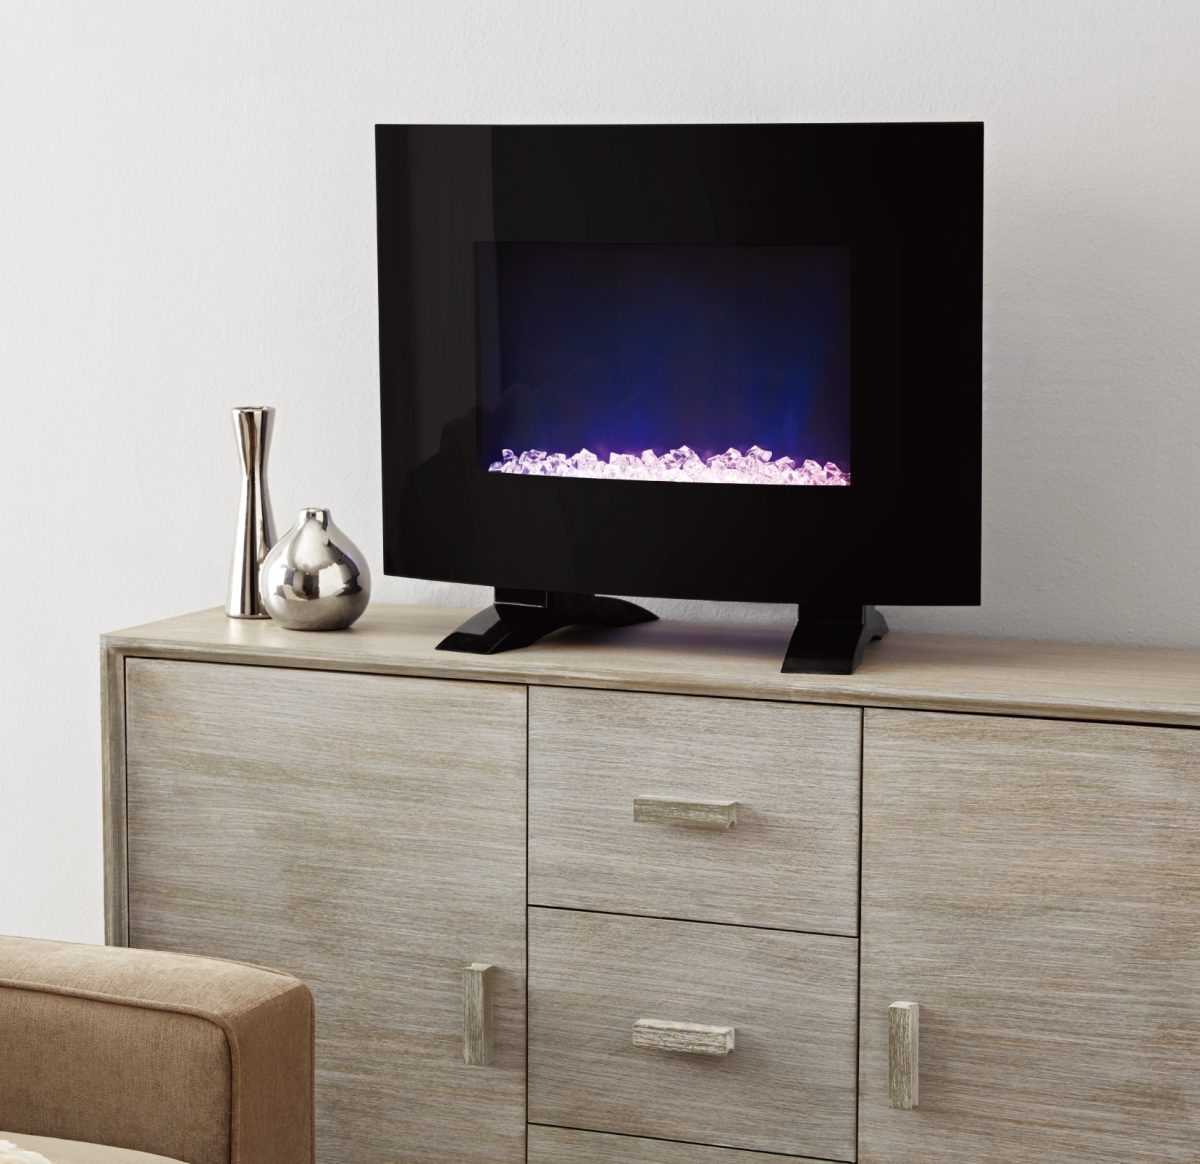 Electric Fireplaces For Sale At Walmart Mainstays Electric Fireplace Only 74 At Walmart Hip2save